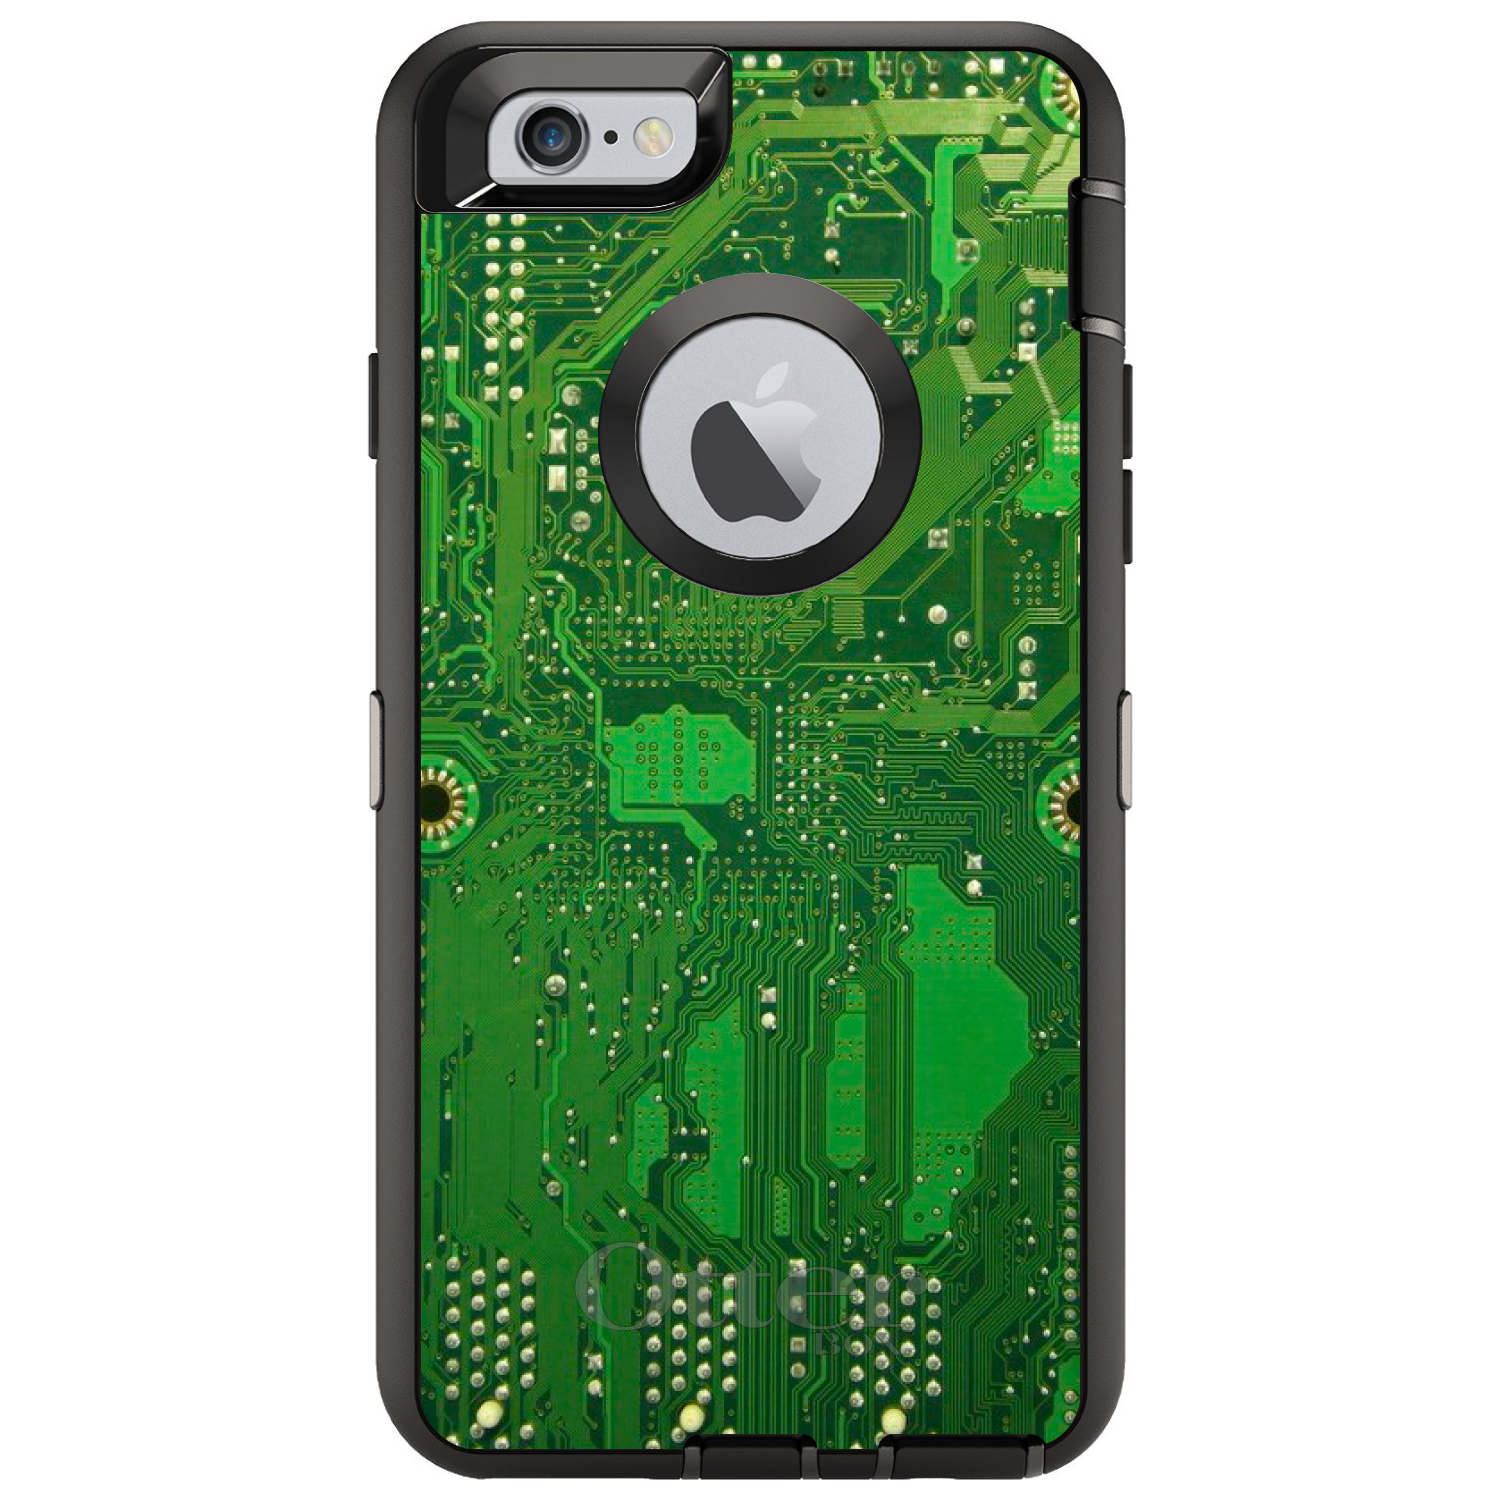 "DistinctInk™ Custom Black OtterBox Defender Series Case for Apple iPhone 6 Plus / 6S Plus (5.5"" Screen) - Green Circuit Board"